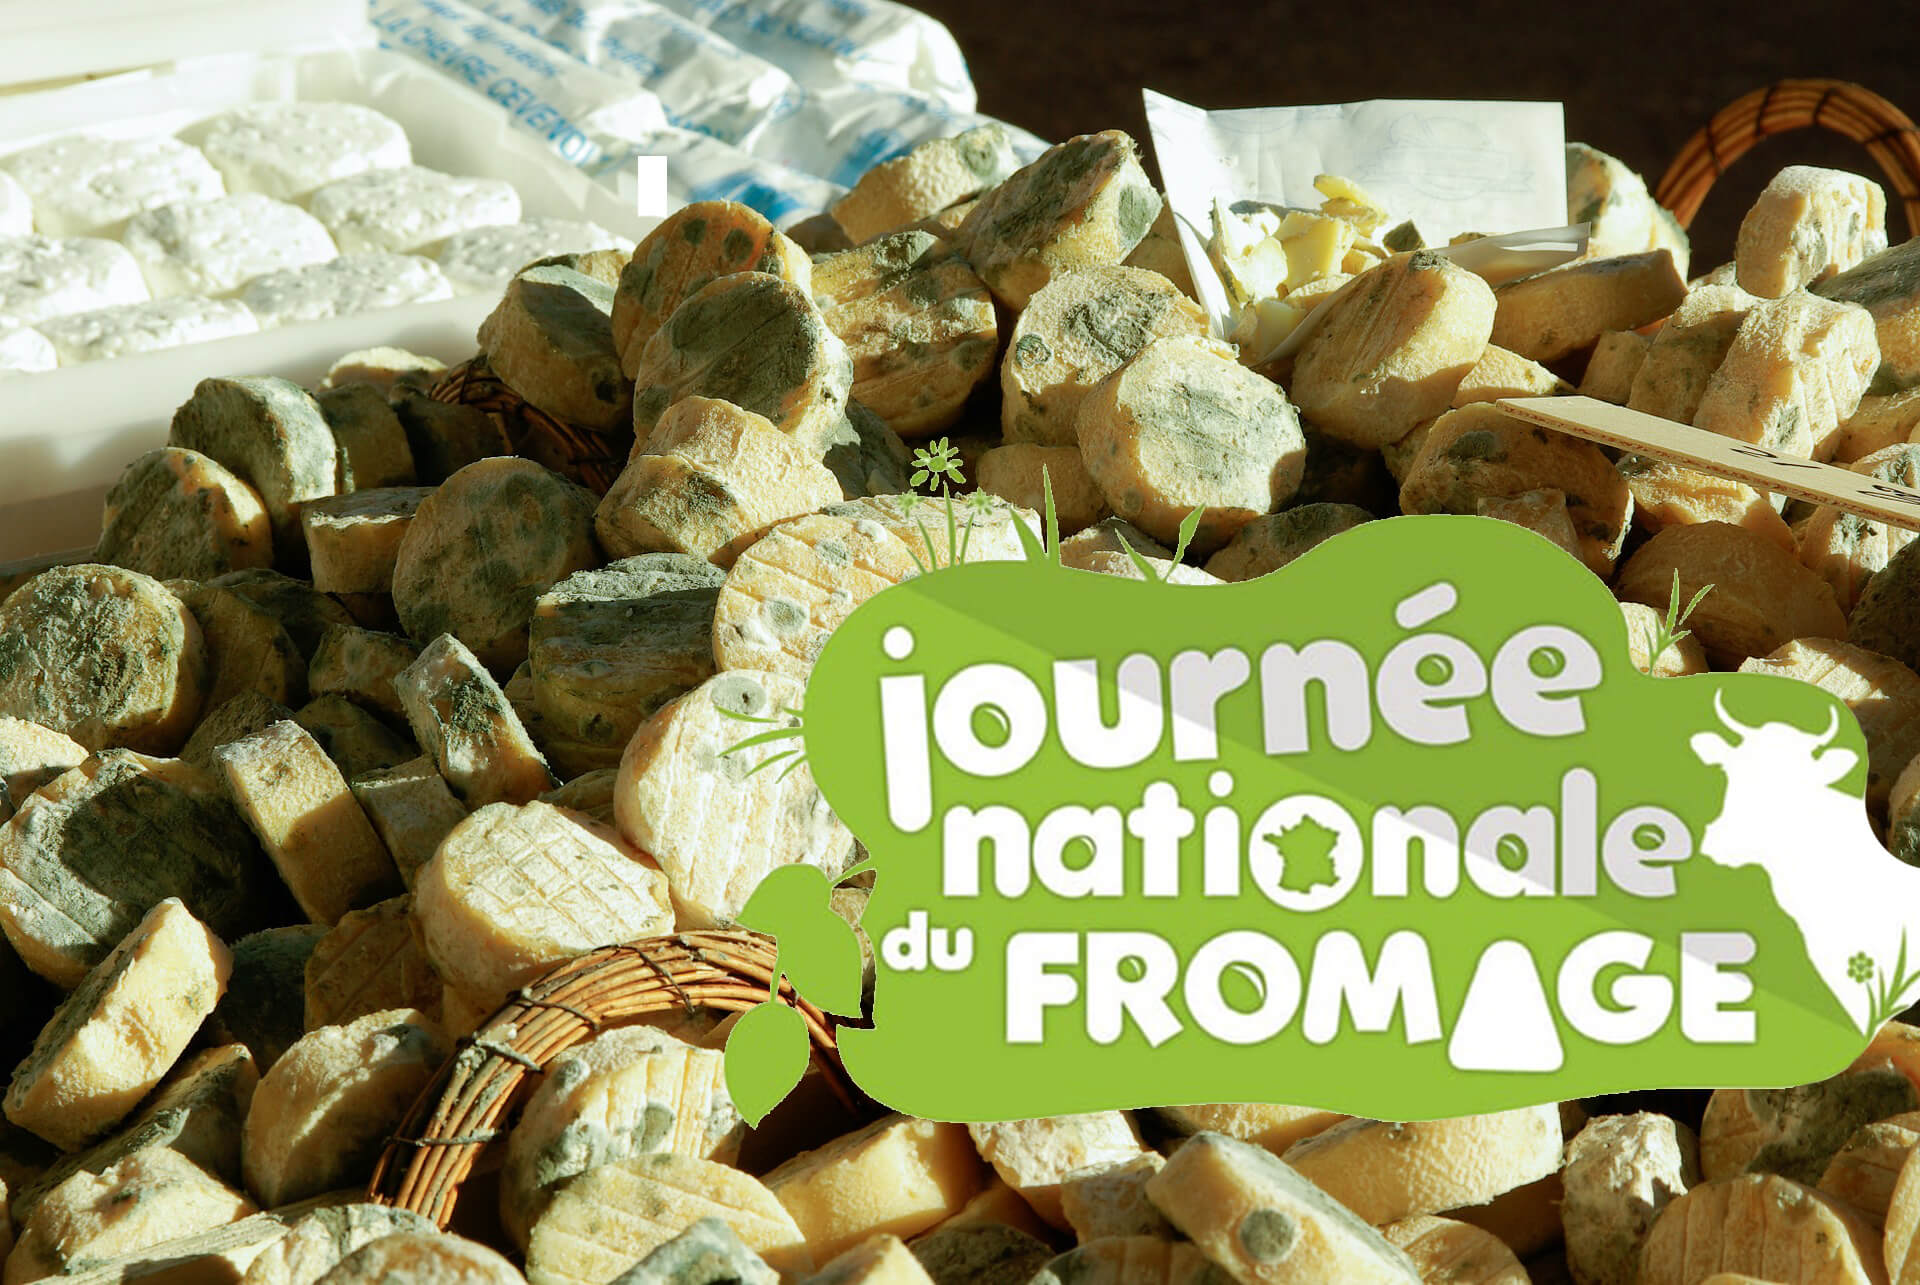 journee_nationale_du_fromage